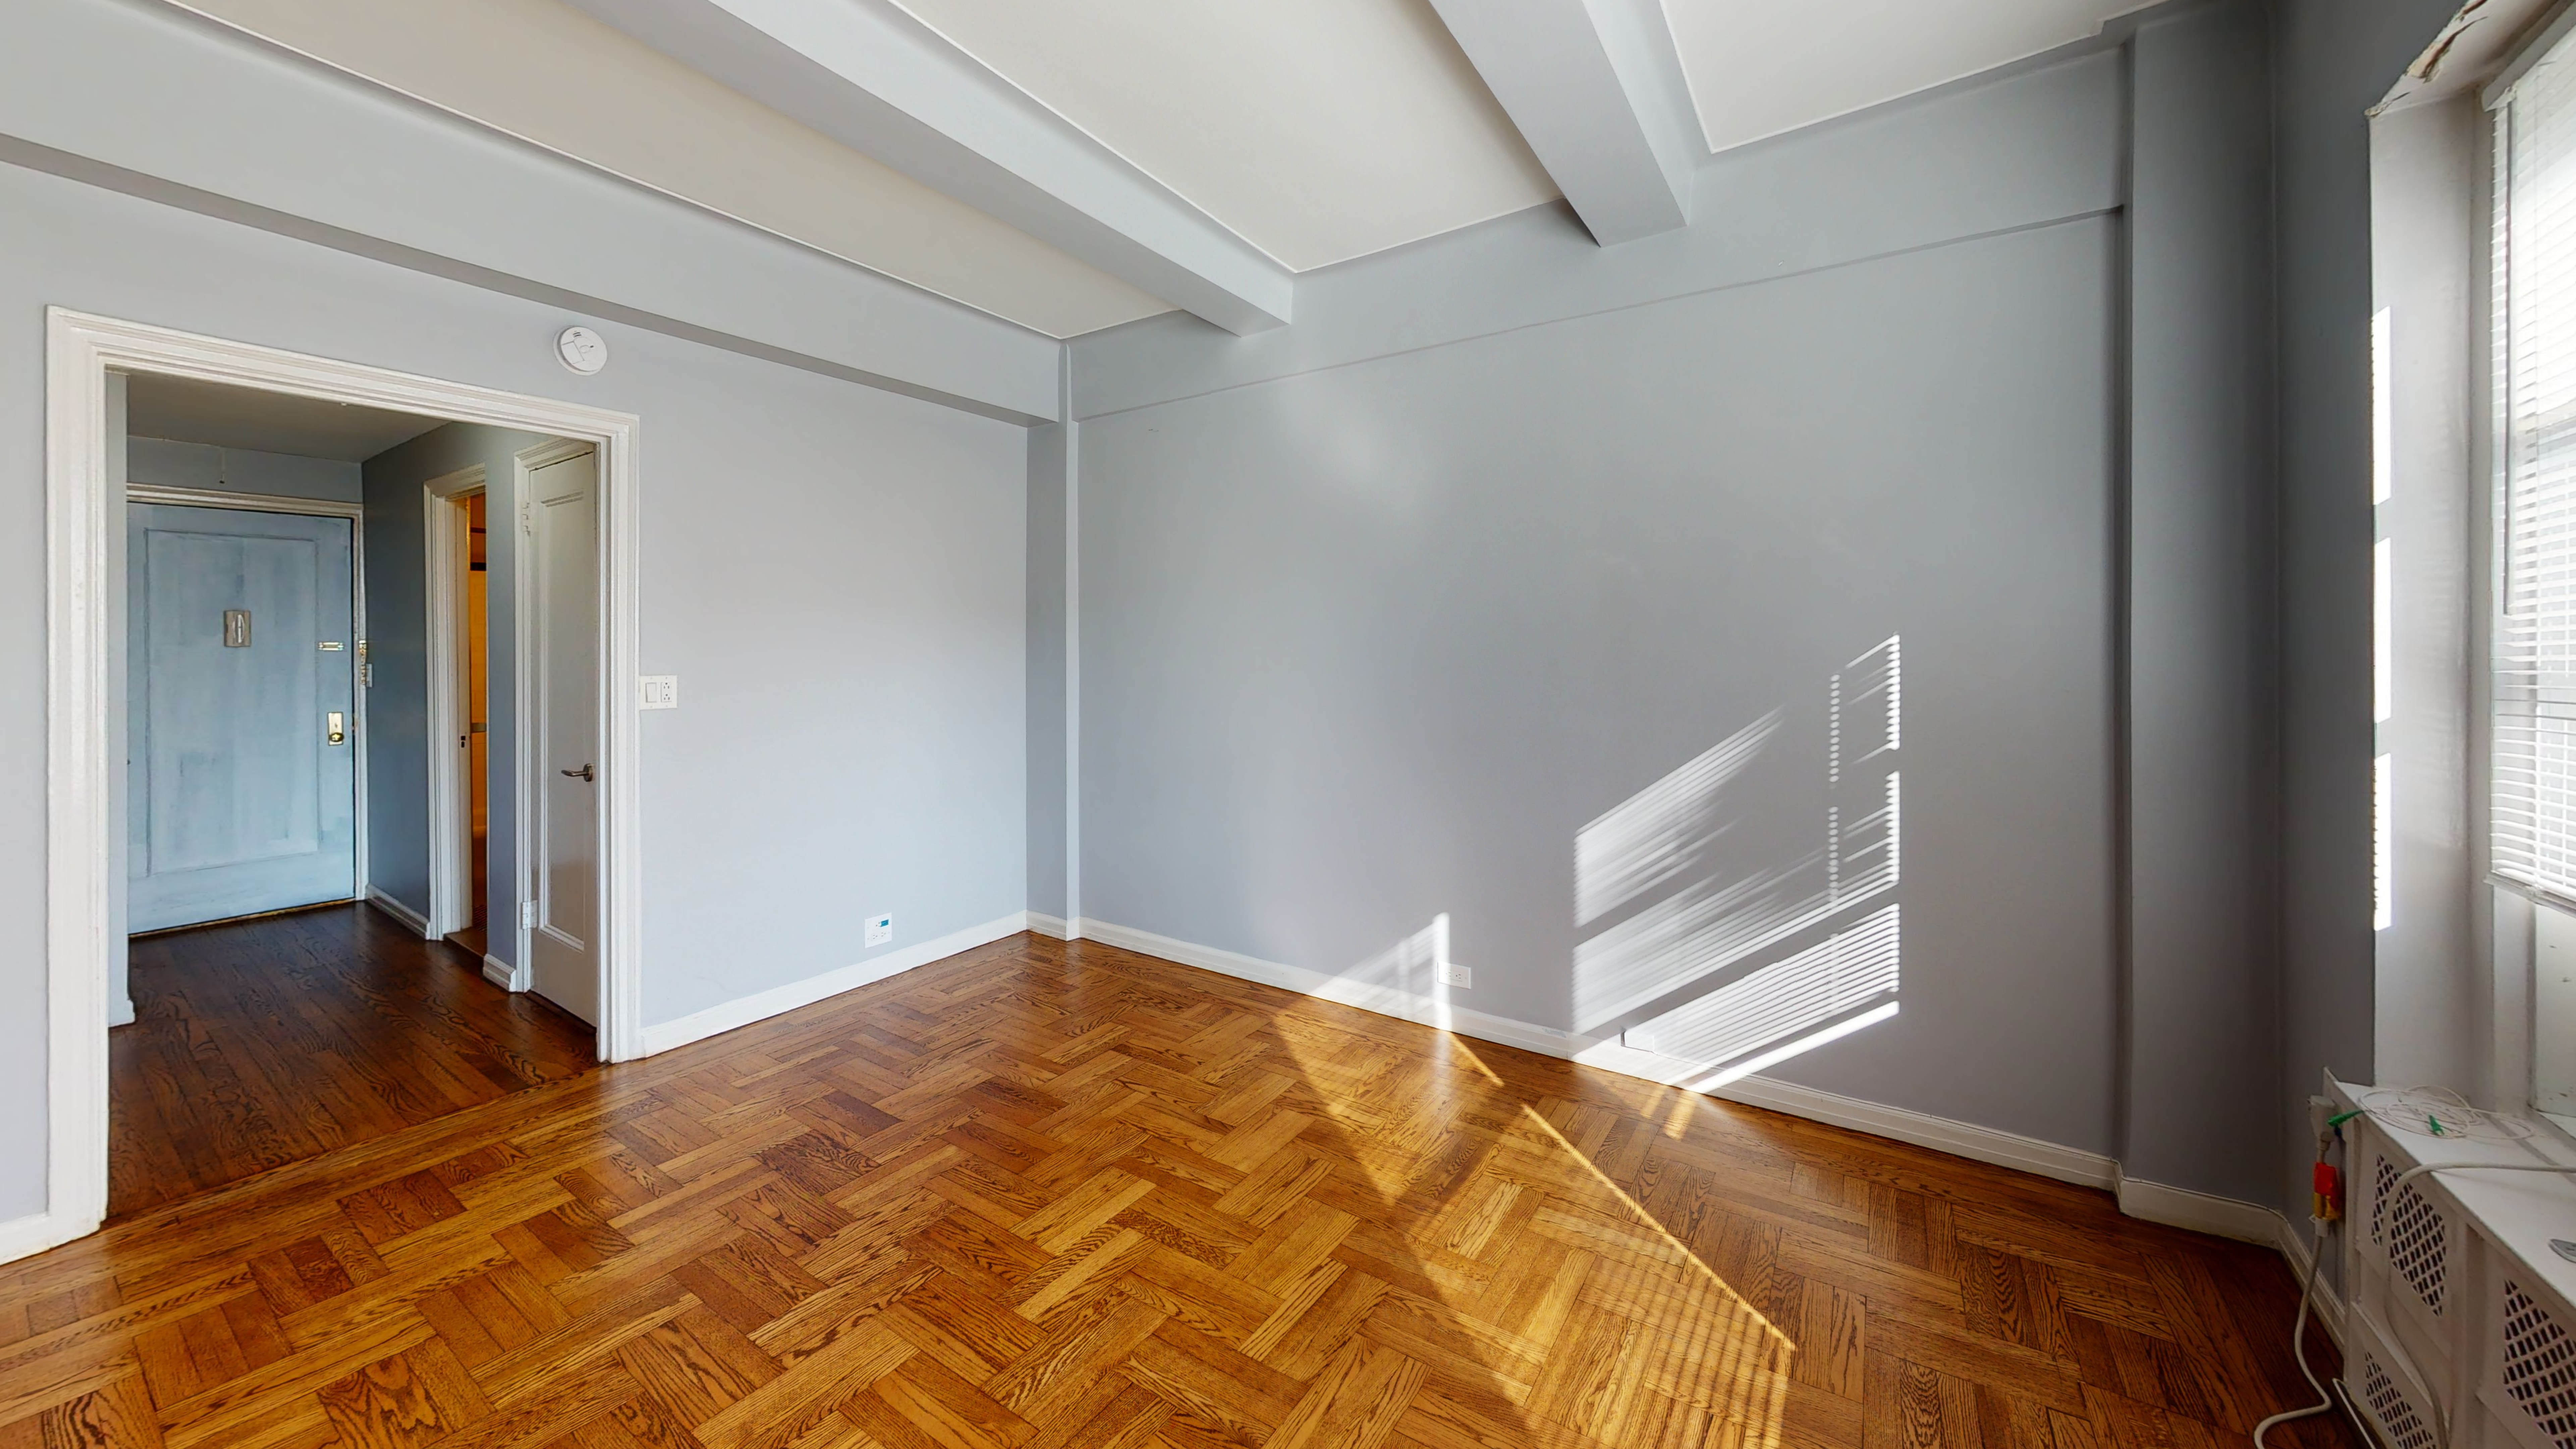 primary photo for 433 West 34th Street 19-C, New York, NY 10001, US